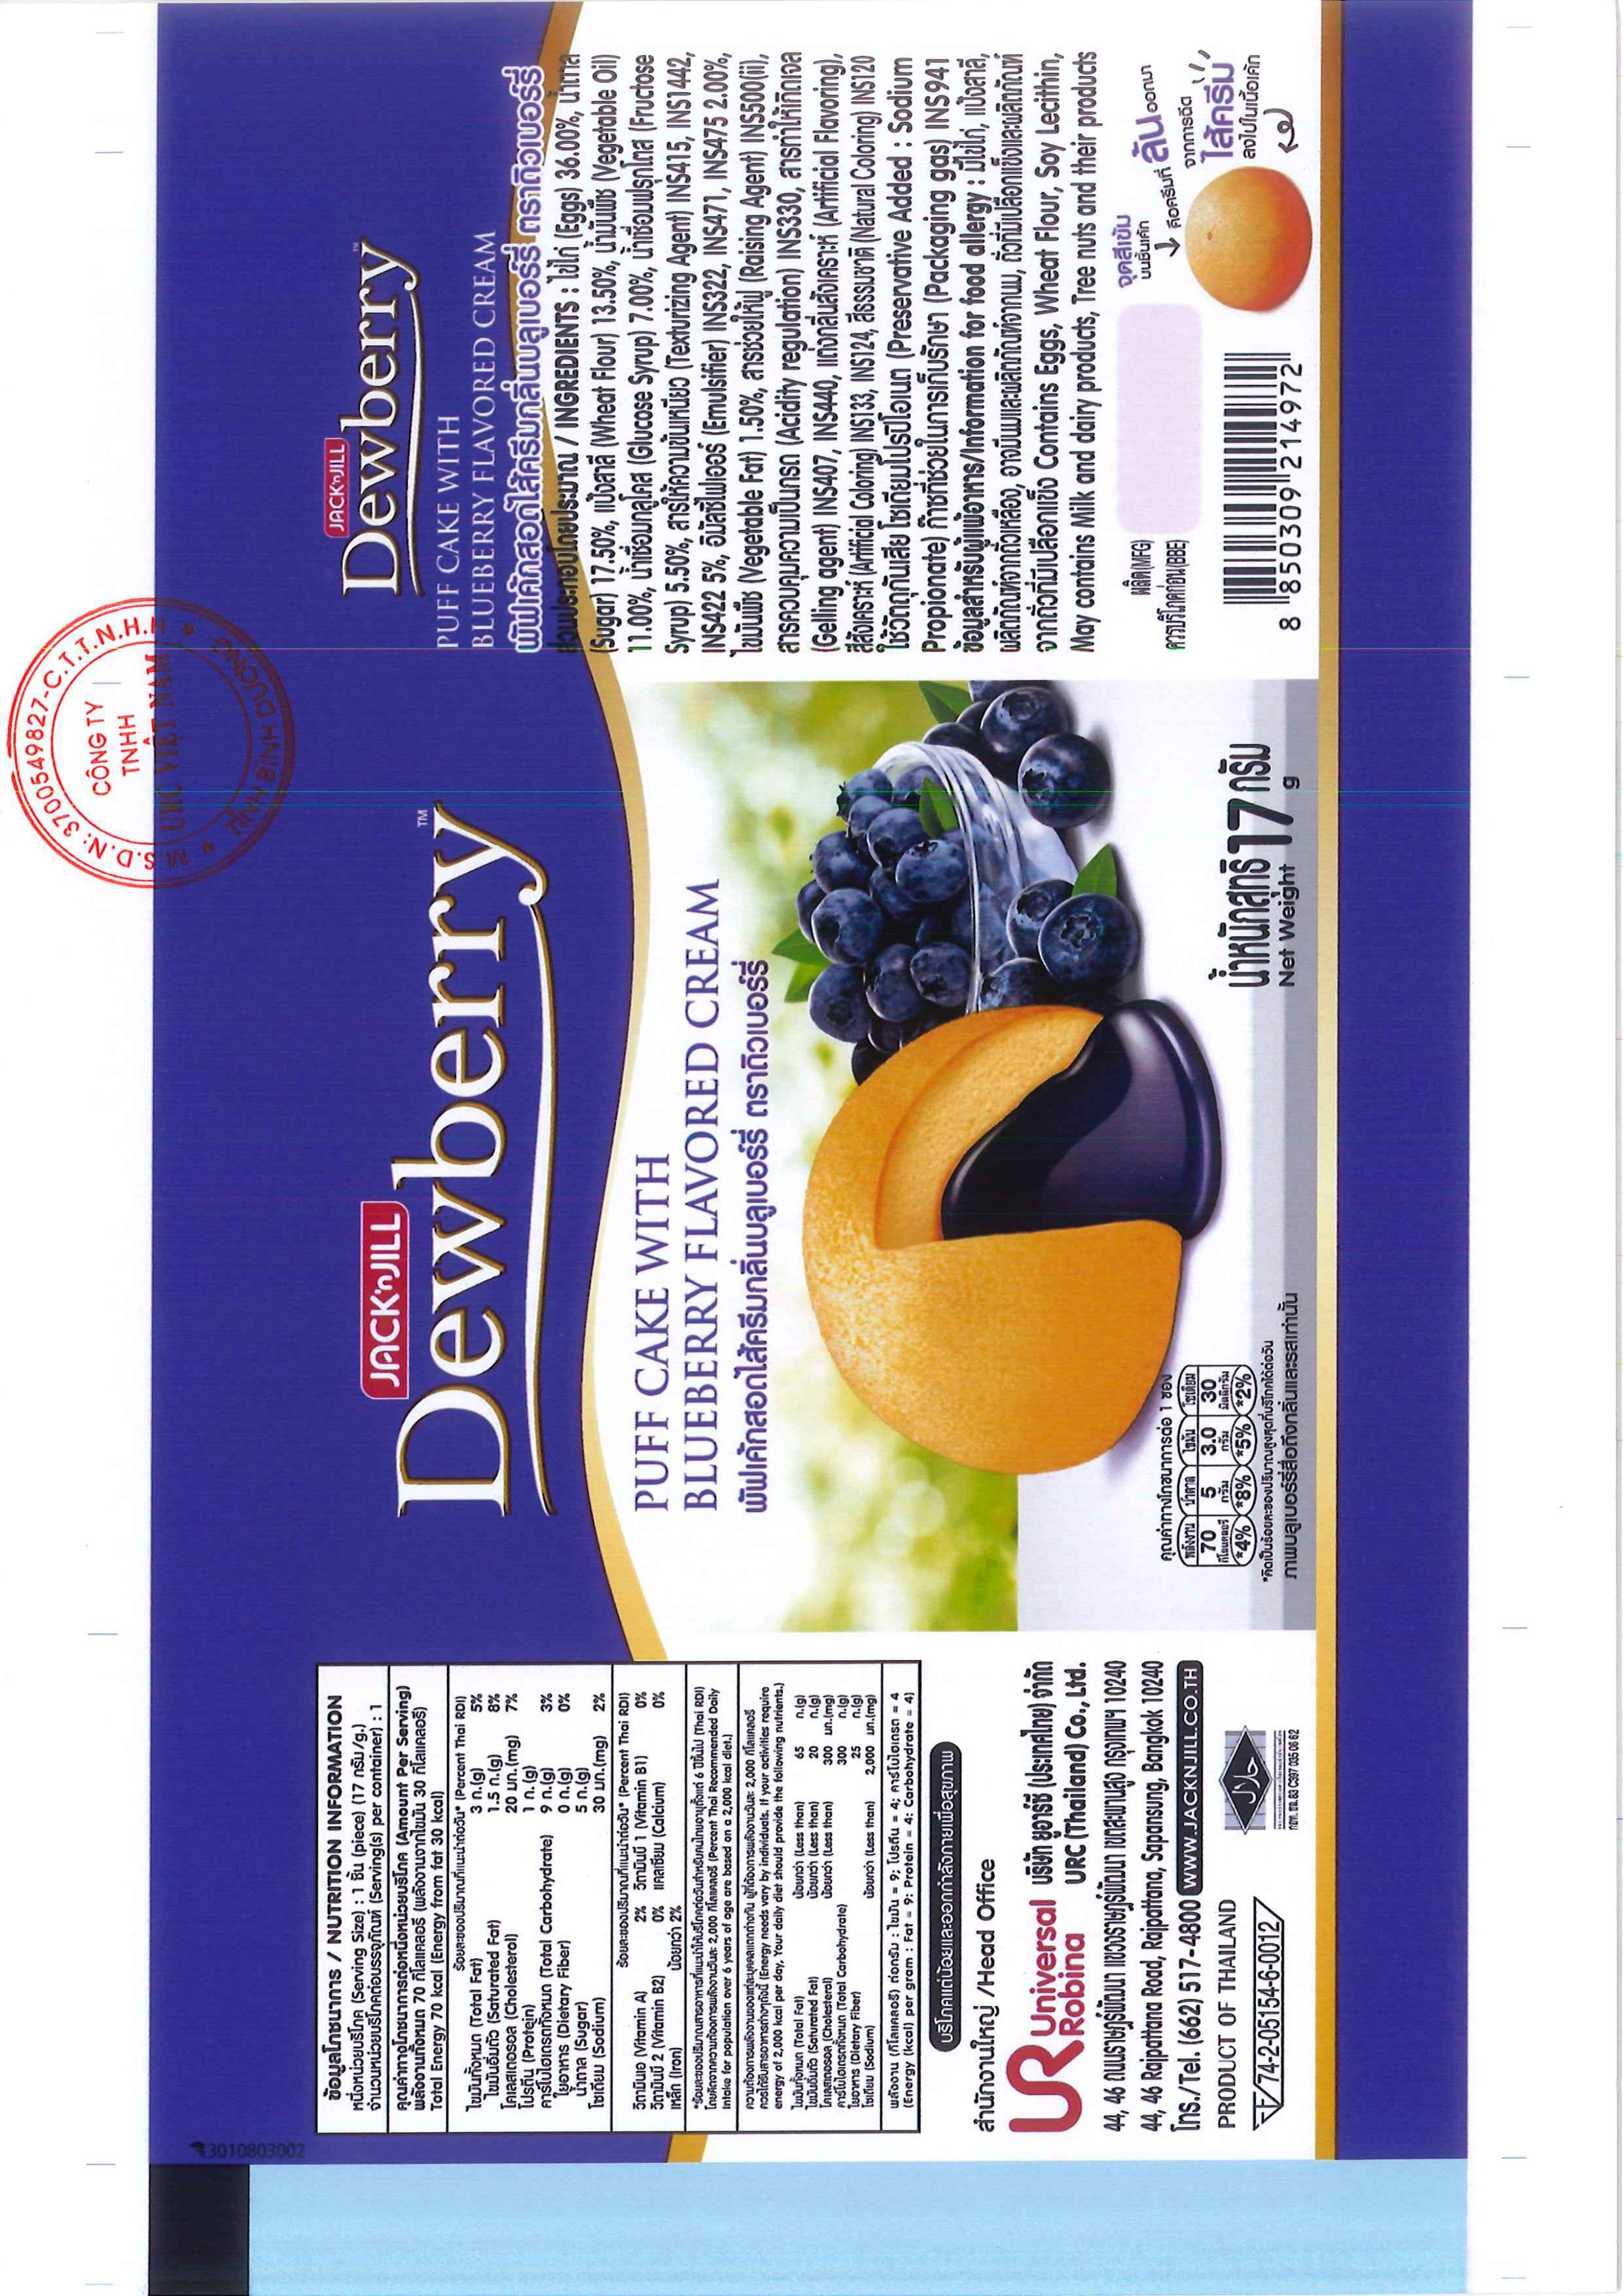 PRODUCT ANNOUNCEMENT DEWBERRY PUFF CAKE WITH BLUEBERRY FLAVORED CREAM